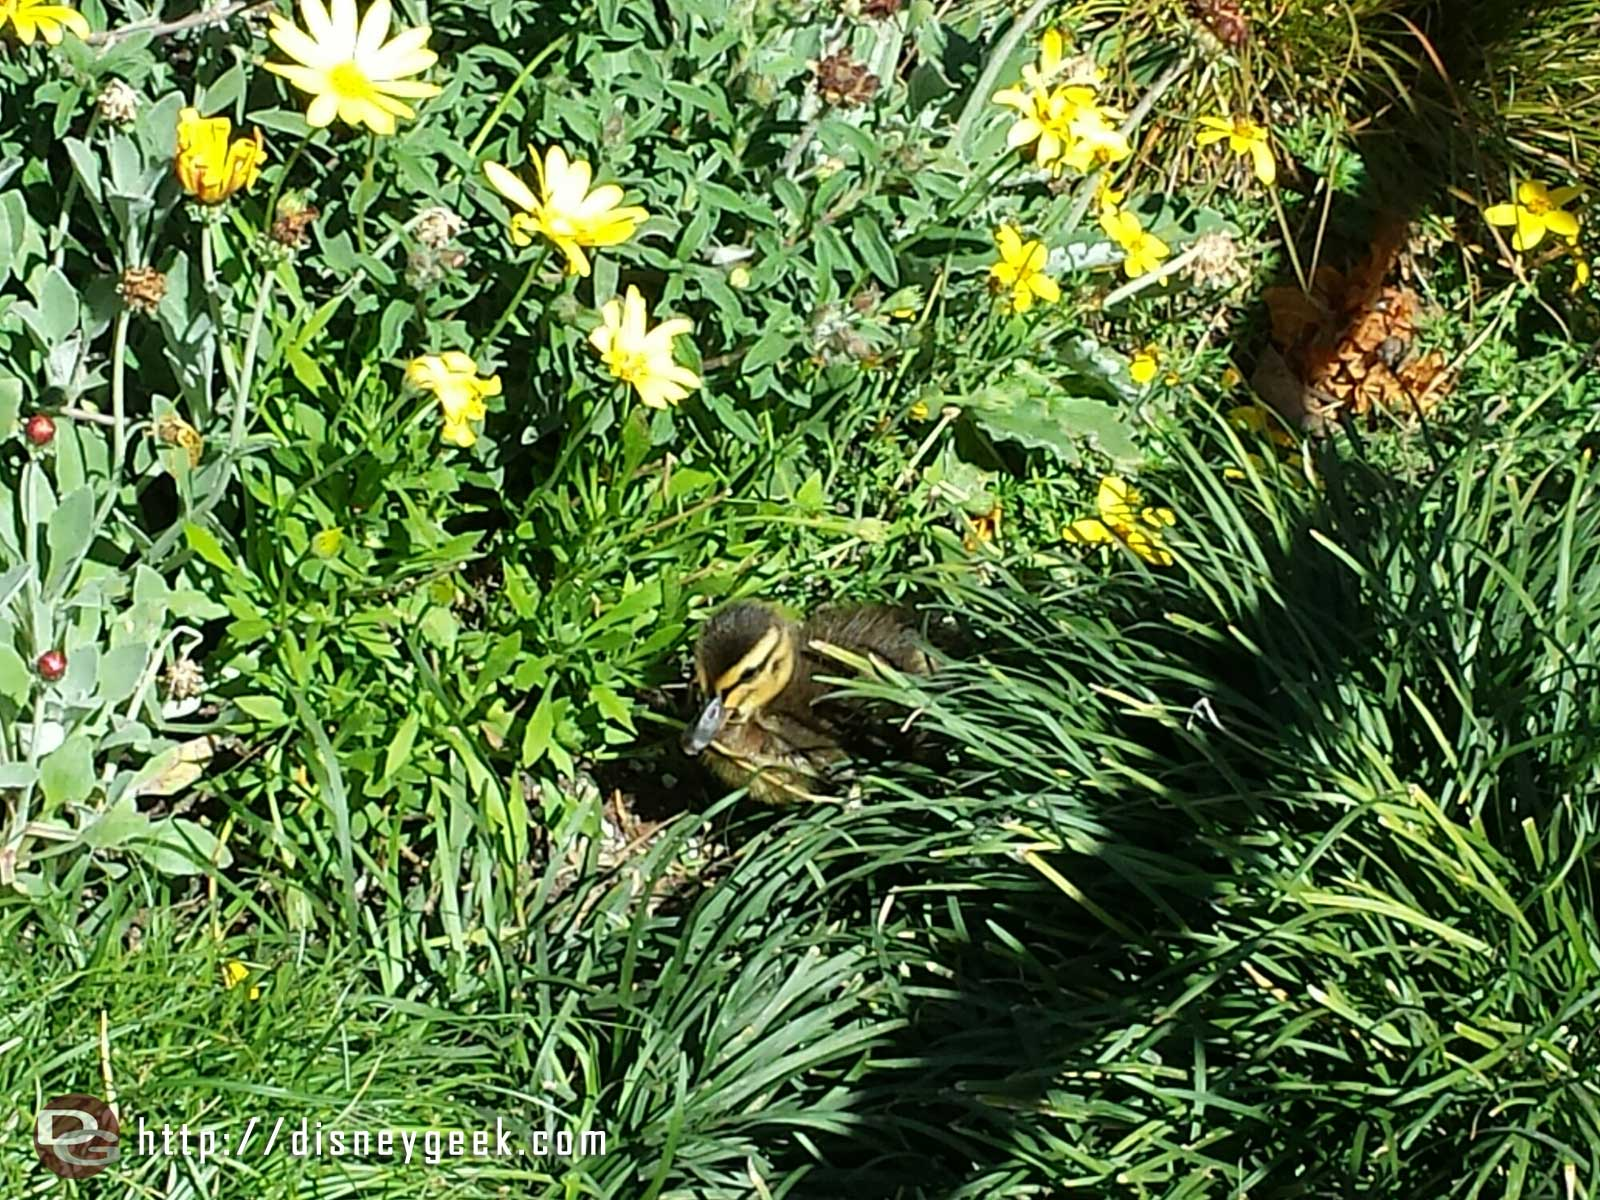 Several ducklings in the plants along the walkway to Frontierland #Disneyland #DisneyDucks